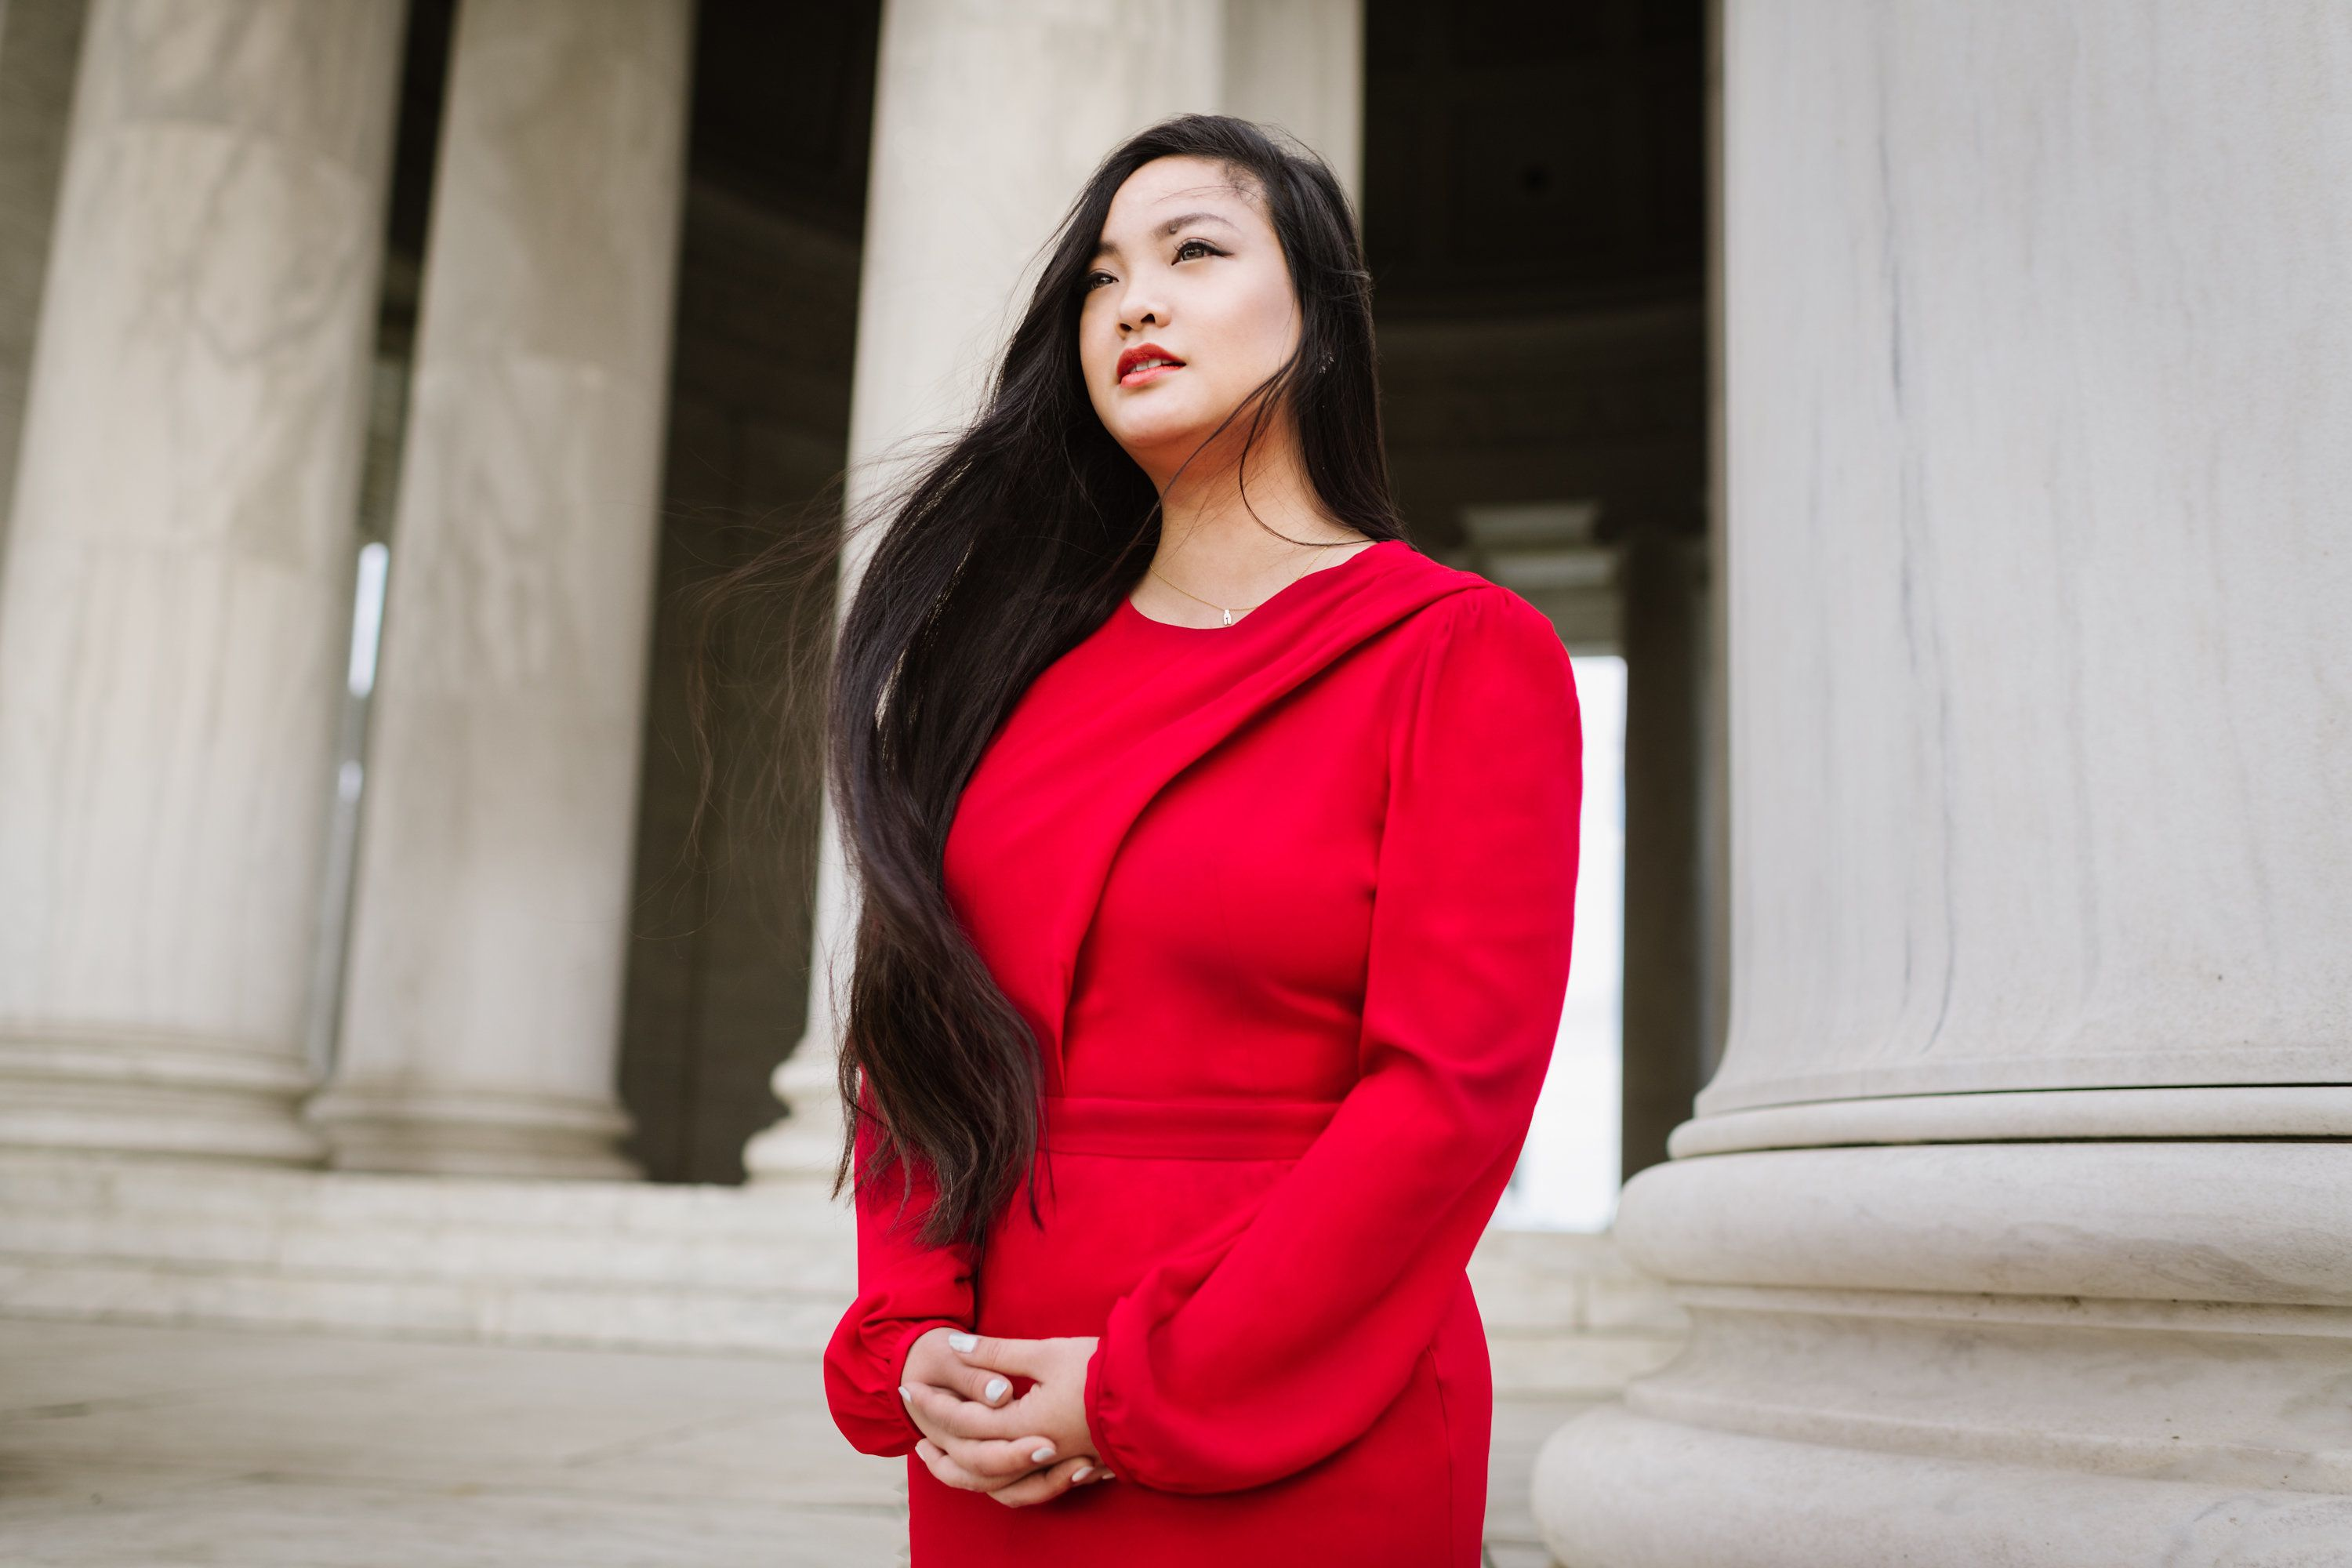 Amanda Nguyen is the founder and president of national civil rights nonprofit organization Rise.